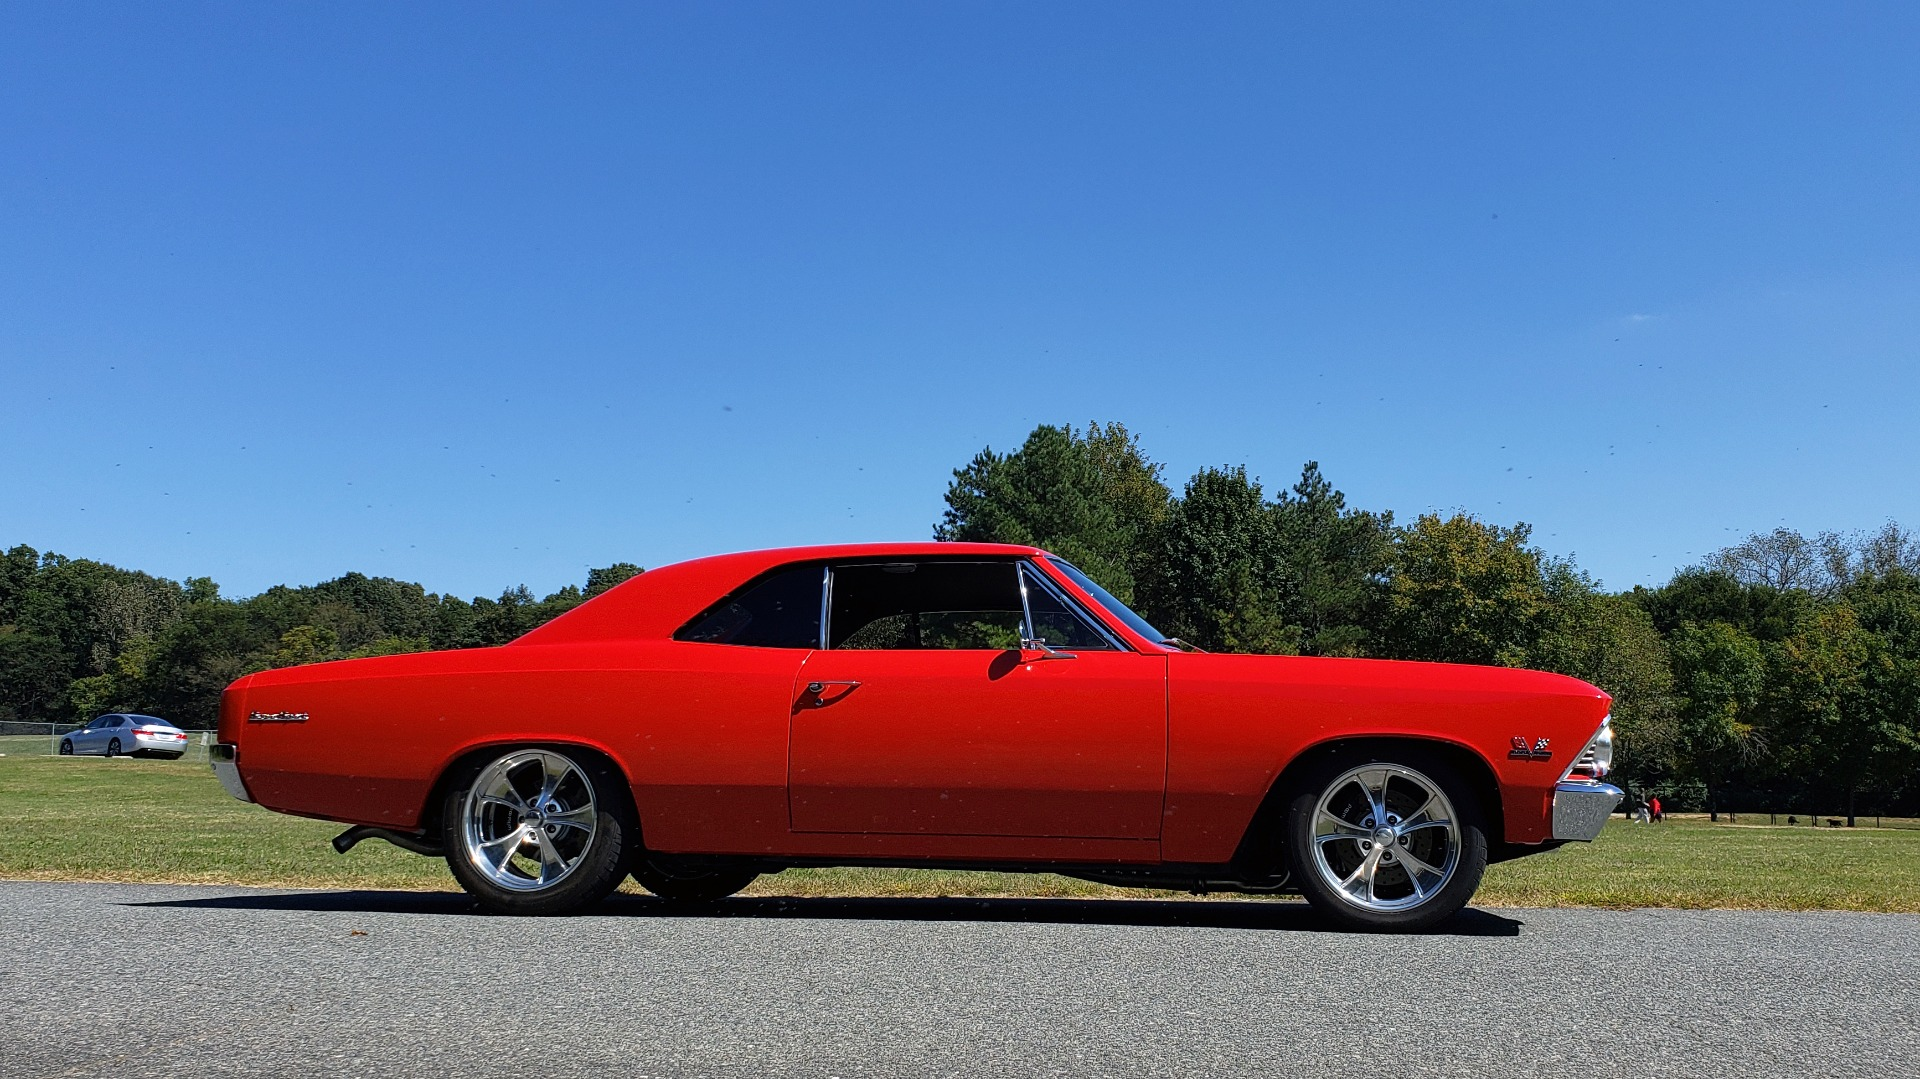 Used 1966 Chevrolet CHEVELLE SS 396 CUSTOM RESTO-MOD / 4-SPEED MANUAL / 12-BOLT REAR for sale $79,999 at Formula Imports in Charlotte NC 28227 10